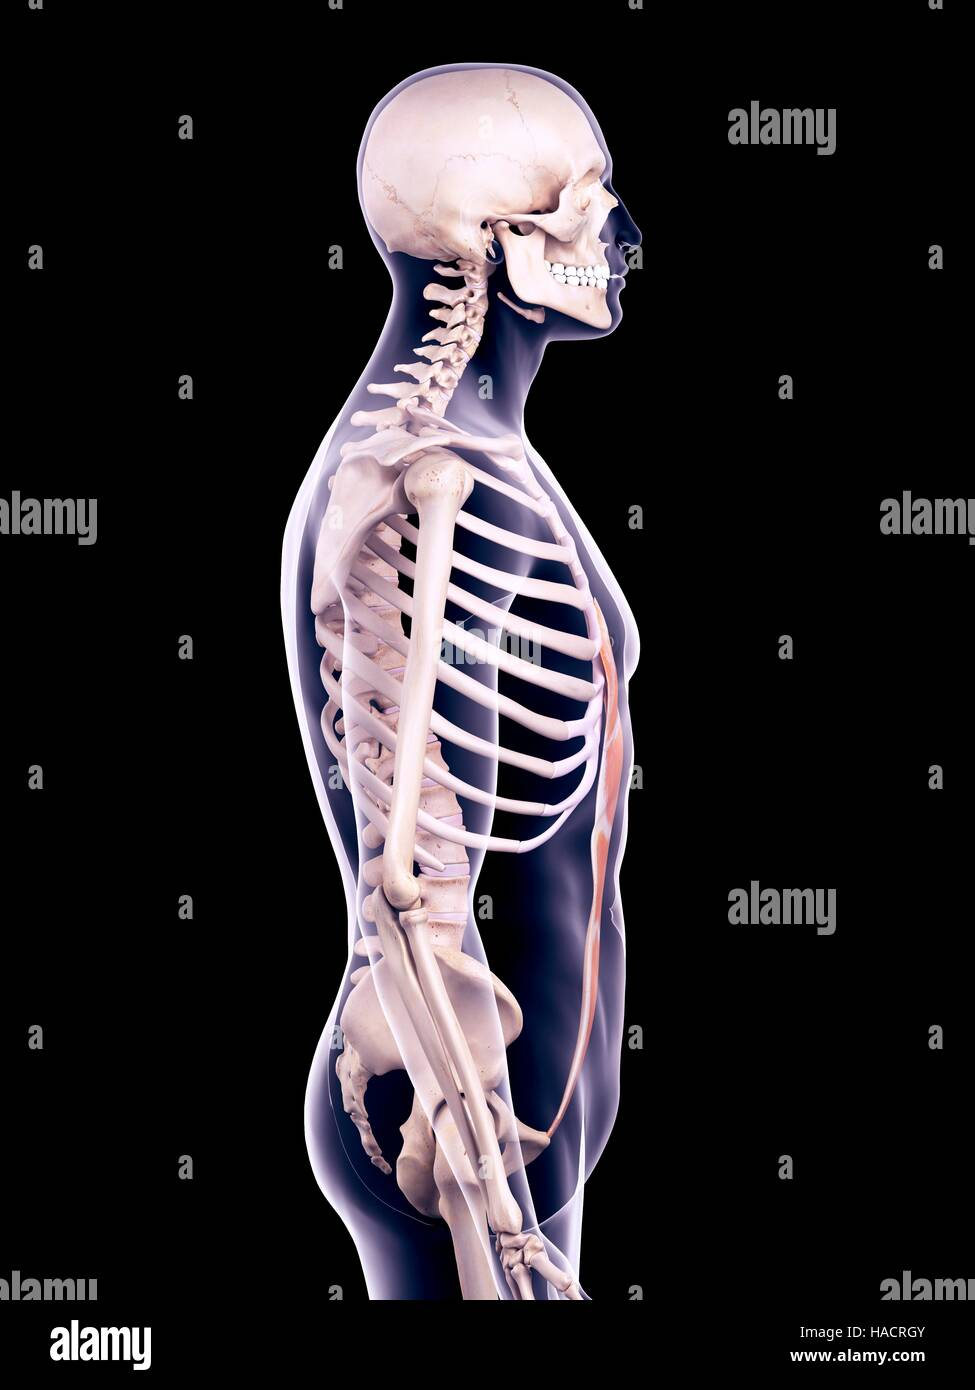 Lateral Rectus Muscle Stock Photos & Lateral Rectus Muscle Stock ...